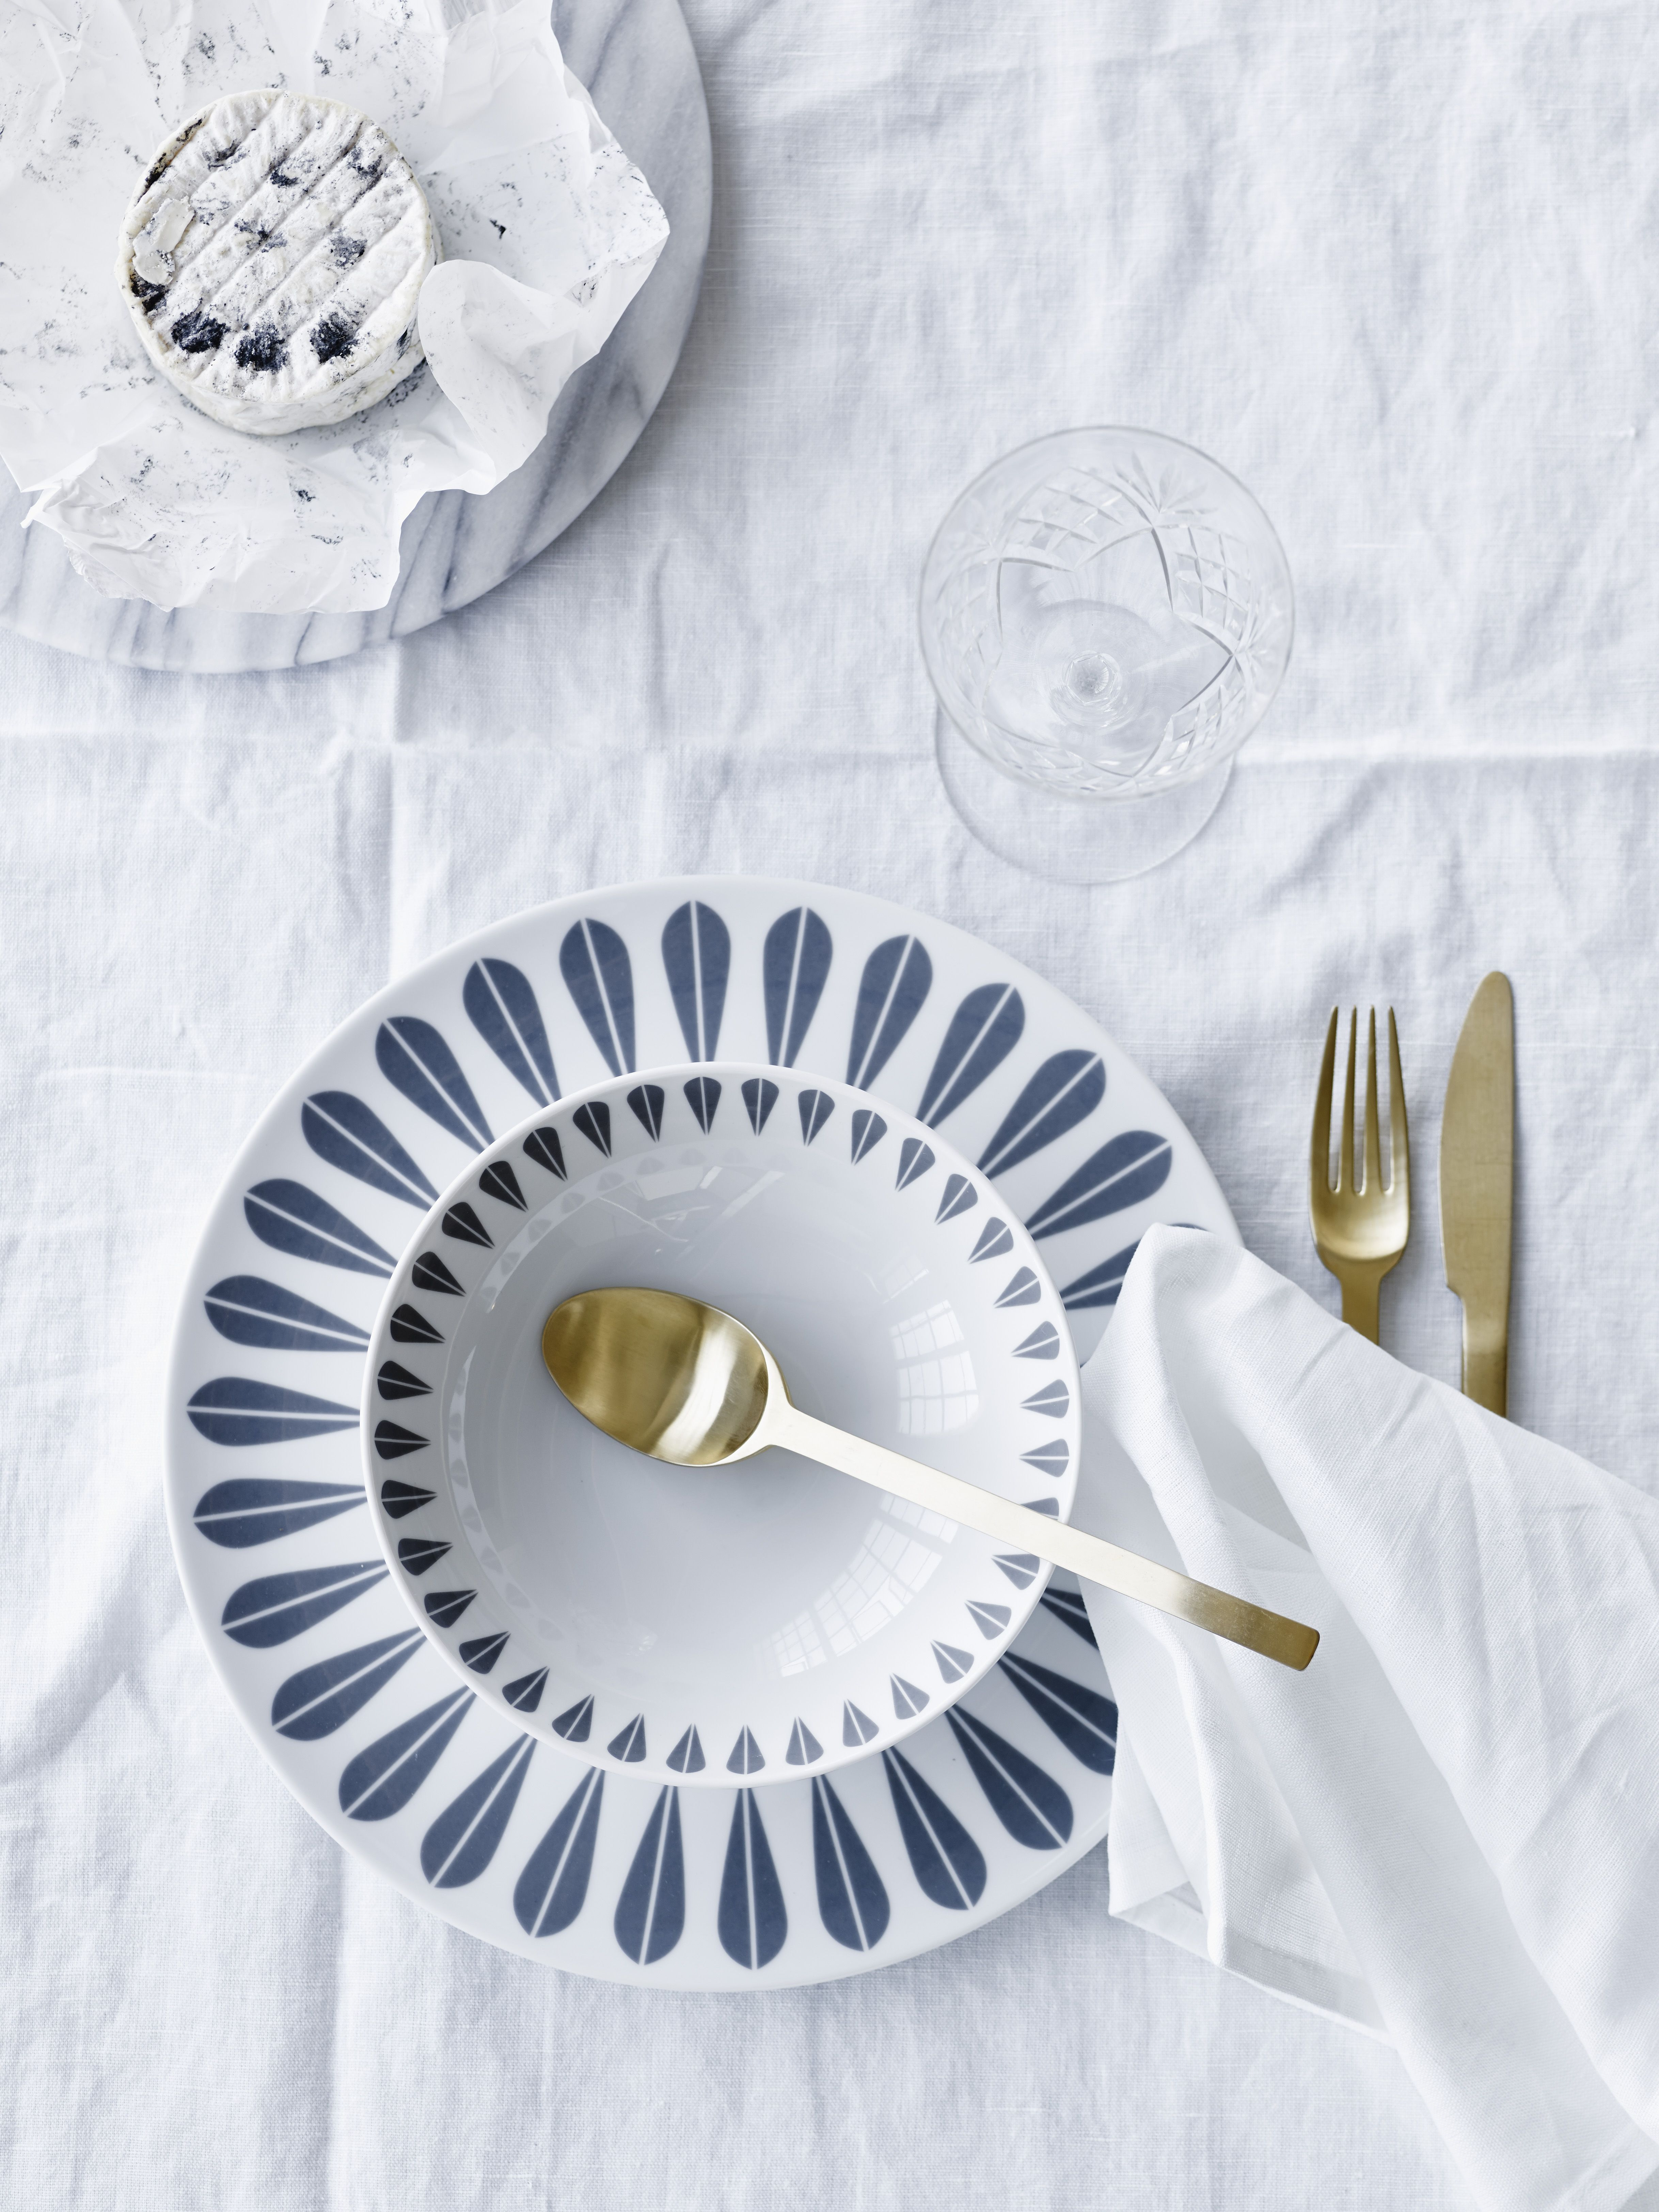 Arne Clausen Lotus Tableware / Lucie Kaas  sc 1 st  Pinterest & Arne Clausen Lotus Tableware / Lucie Kaas | Arne Clausen Collection ...